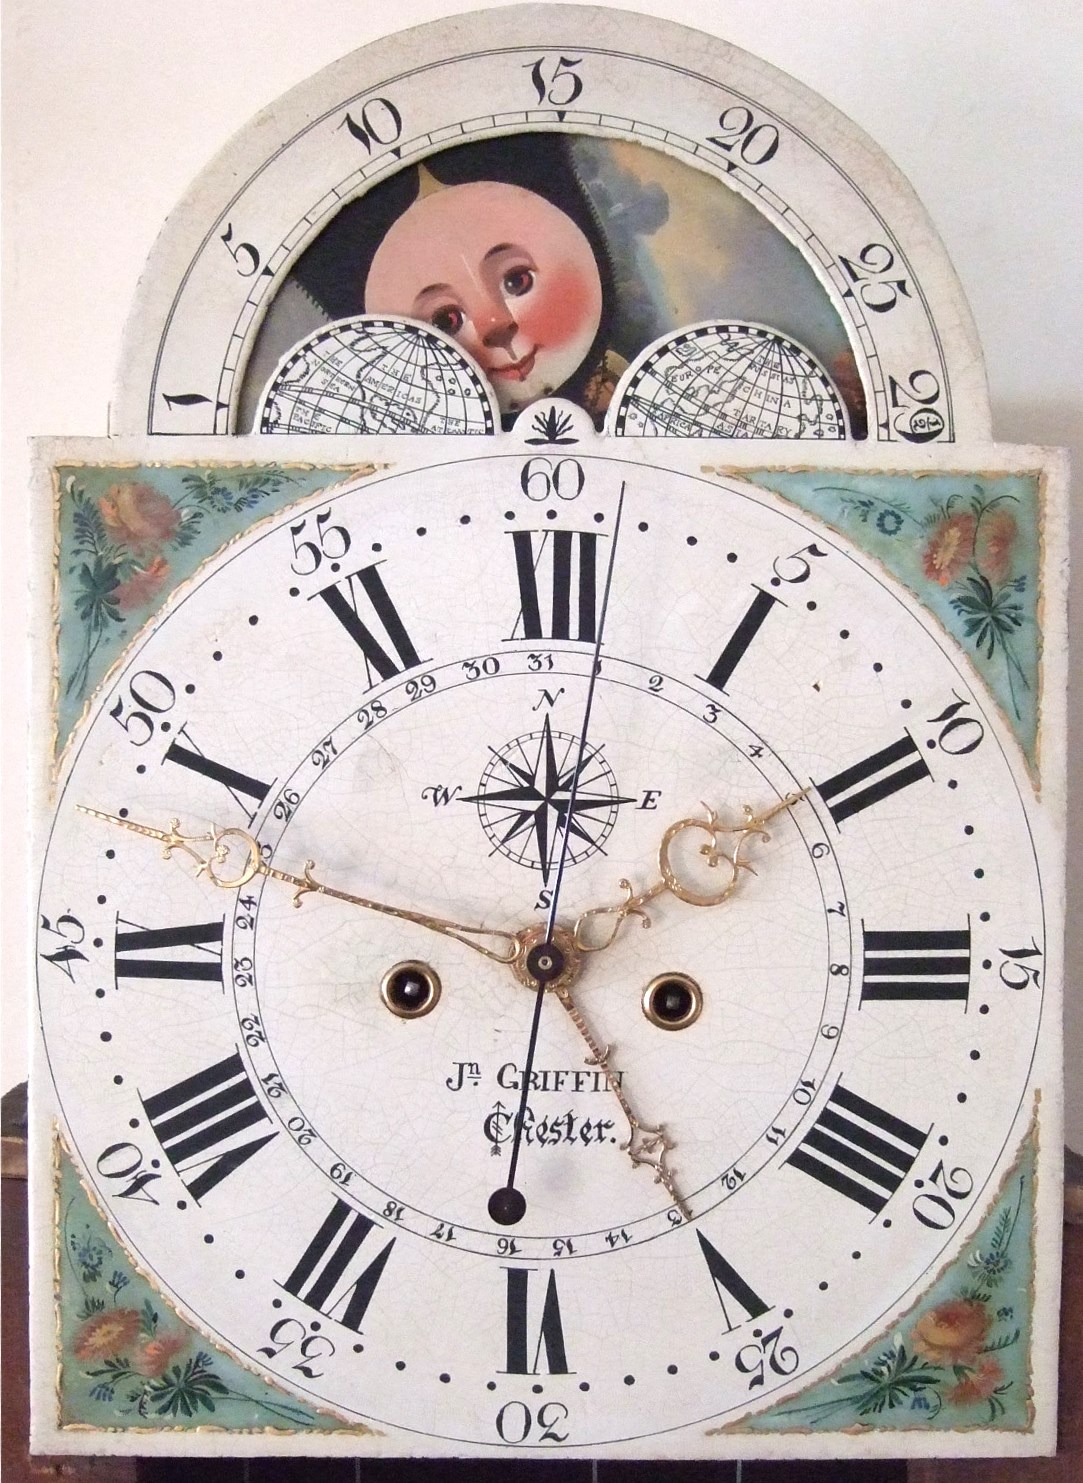 from Otis dating painted dial grandfather clocks